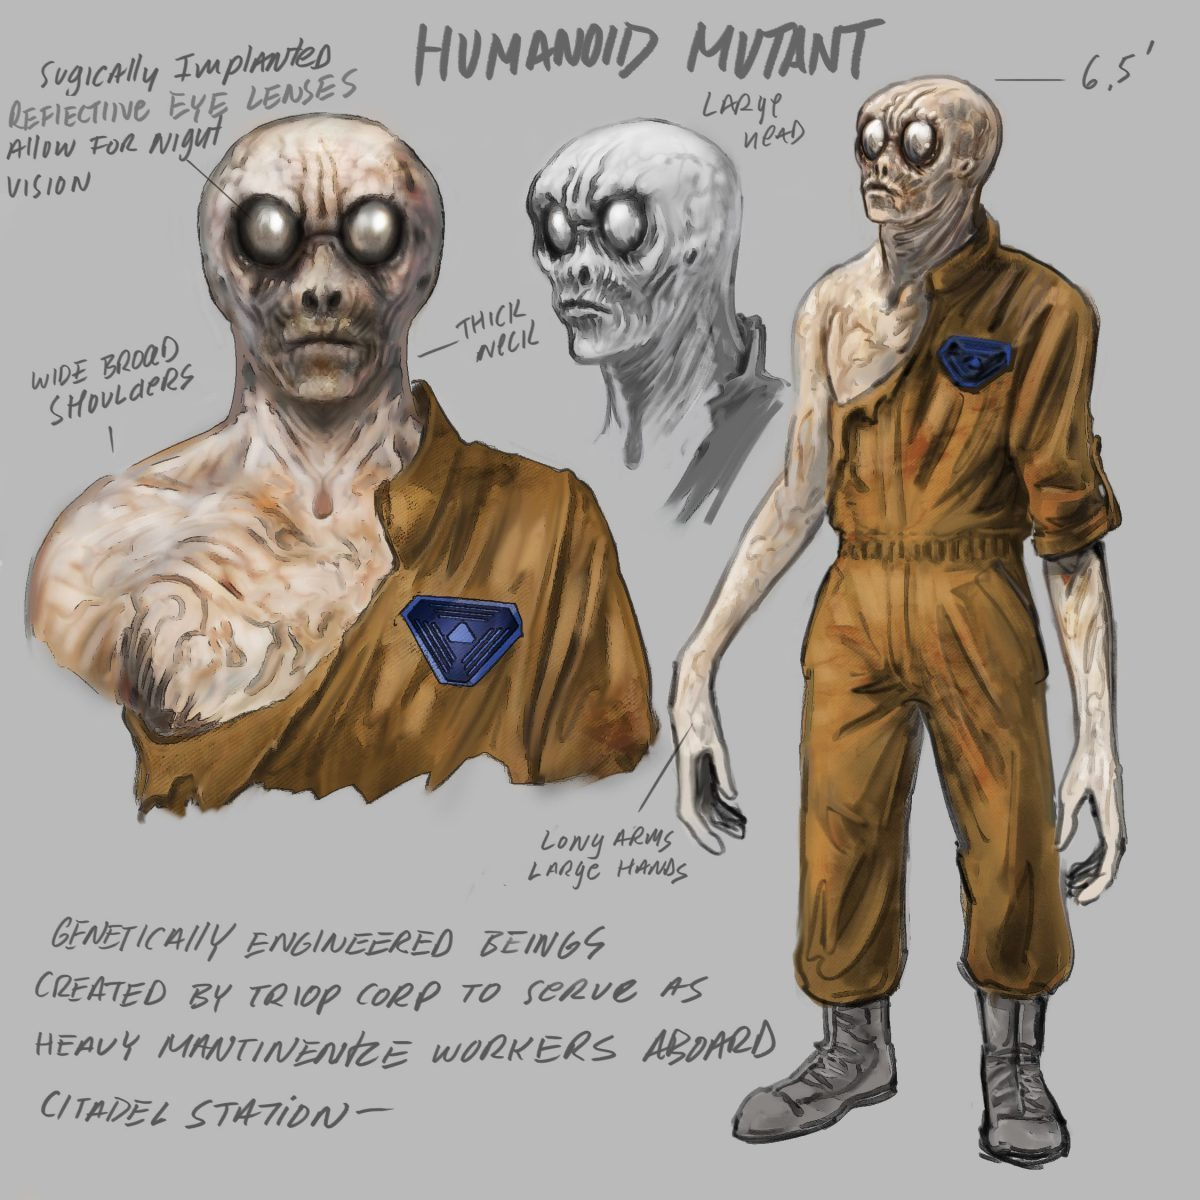 humanoid_mutant_concept_sheet.0